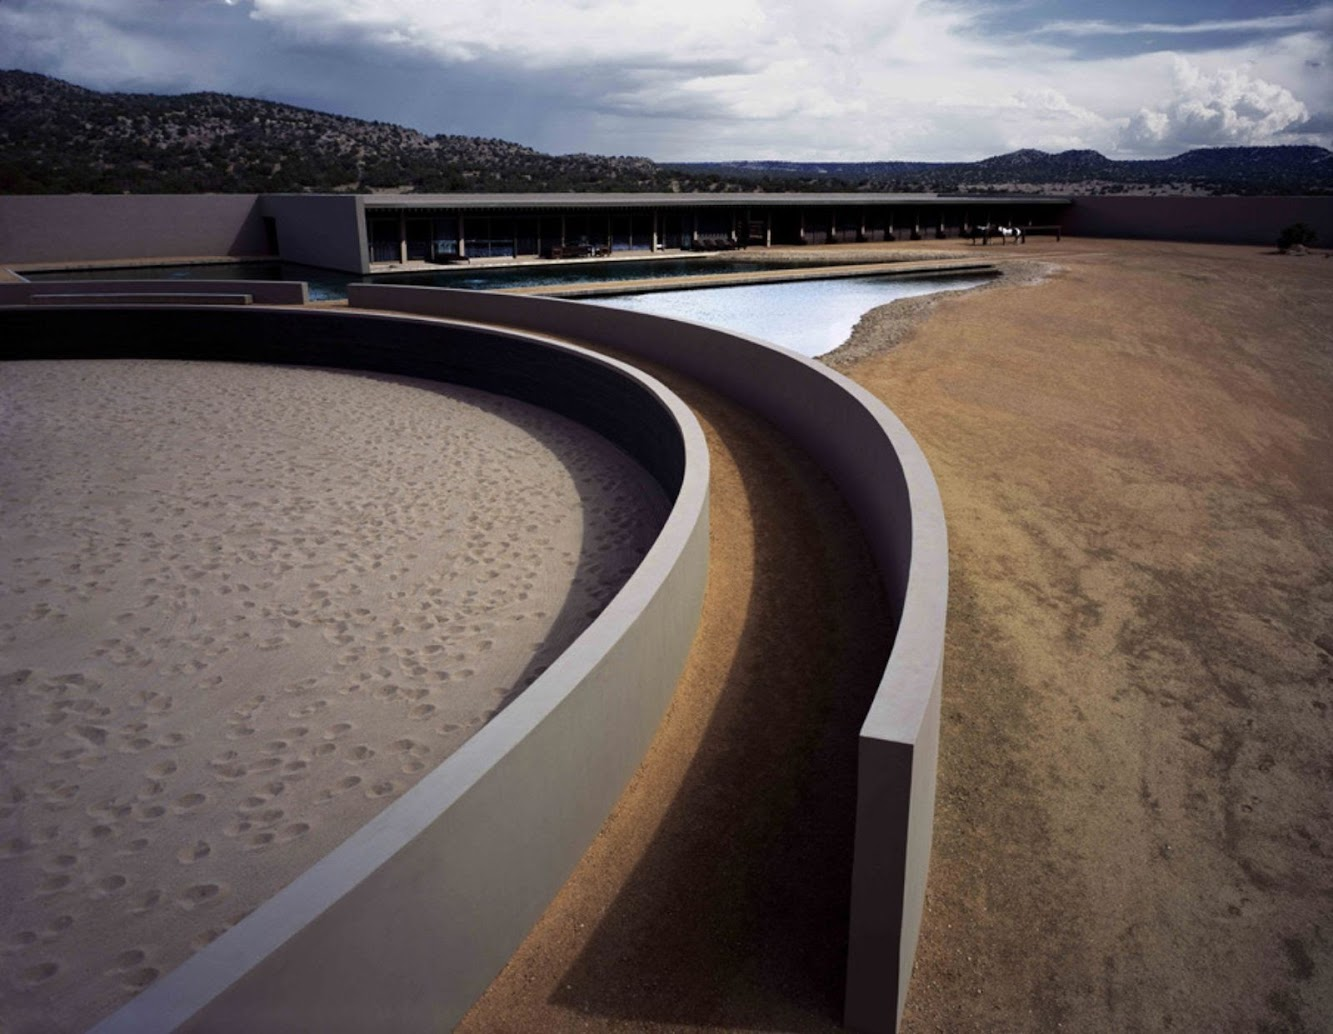 01-Tom-Ford's-Ranch-by-Tadao-Ando